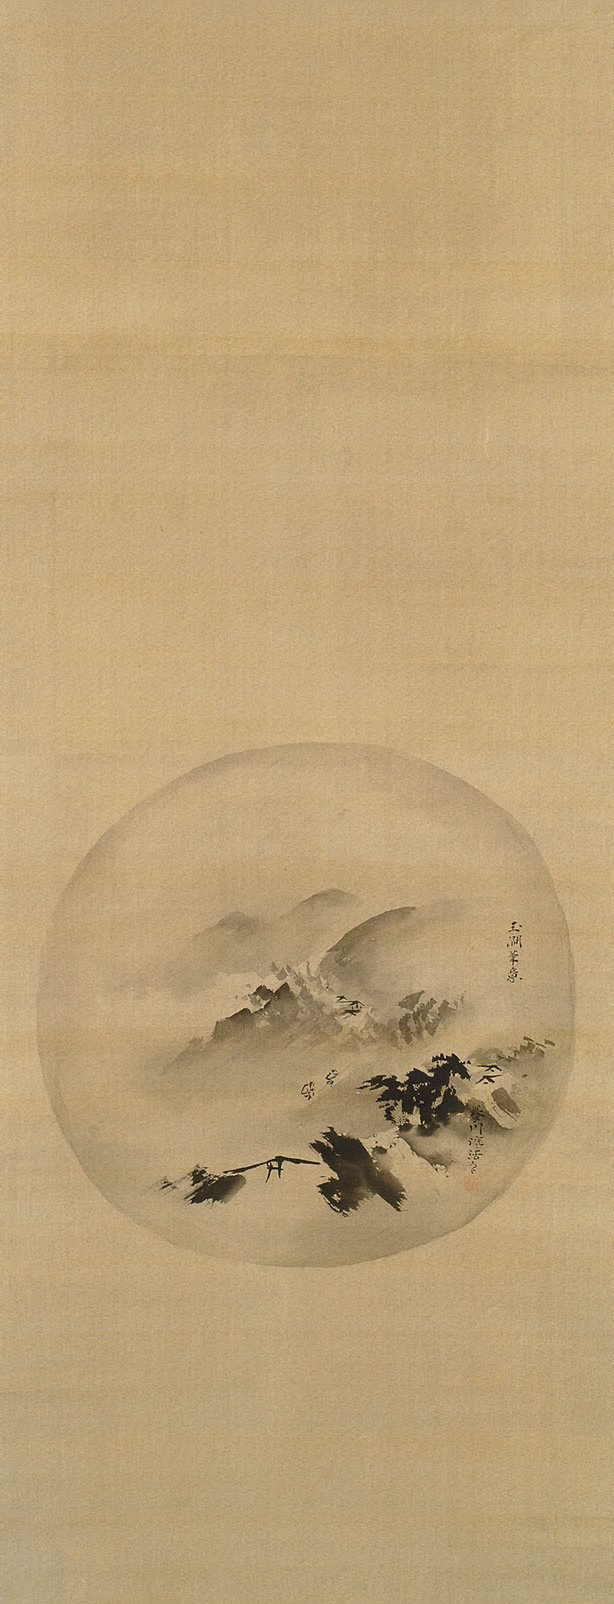 An image of Mountainous Landscape in the style of Yu Jian